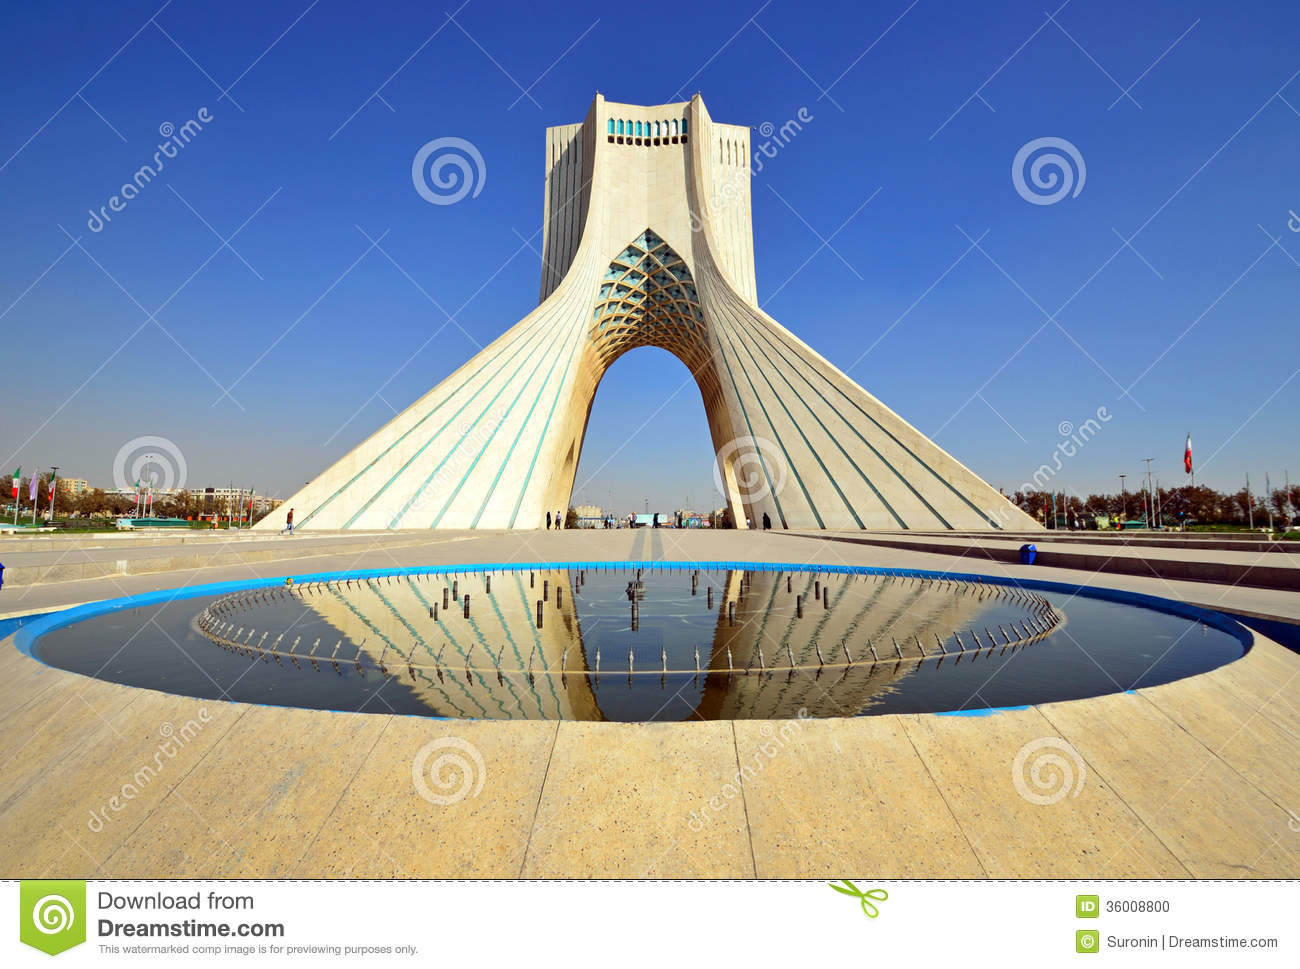 Azadi tower stock photo. Image of azadi, near, asia, square - 36008800